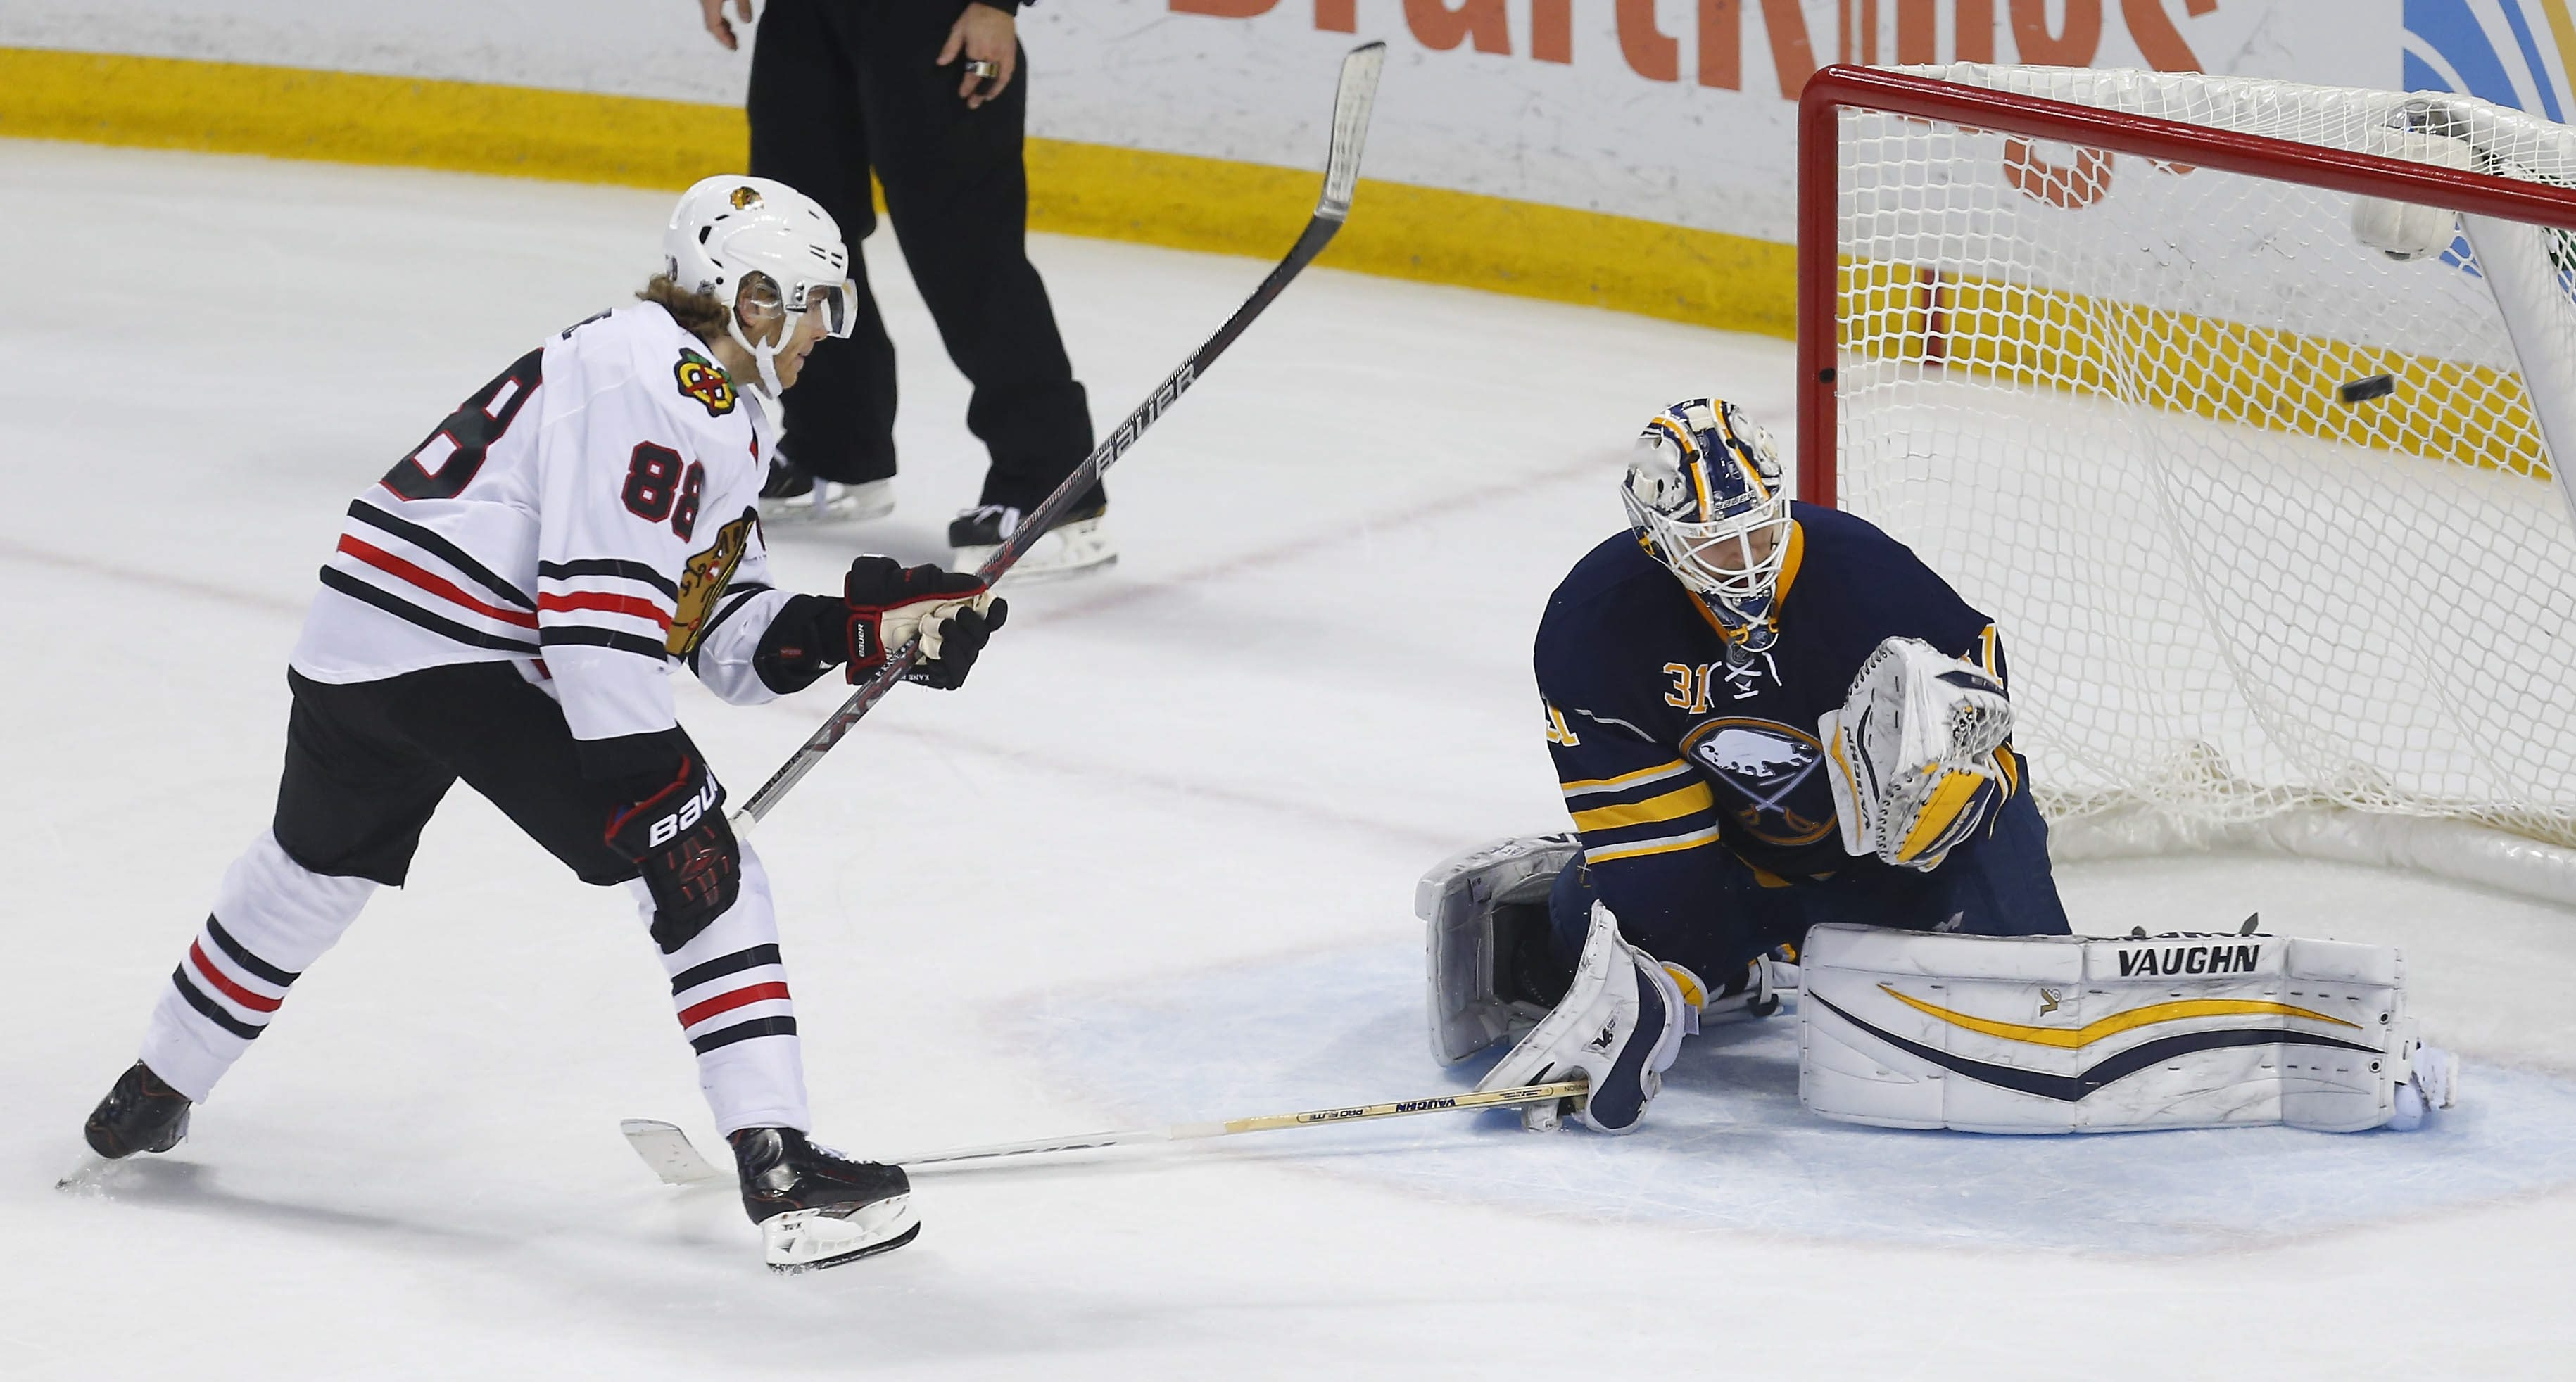 The Chicago Blackhawks' Patrick Kane lifts the puck over the Sabres' Chad Johnson for the lone shootout goal in Chicago's 3-2 victory at First Niagara Center Saturday.